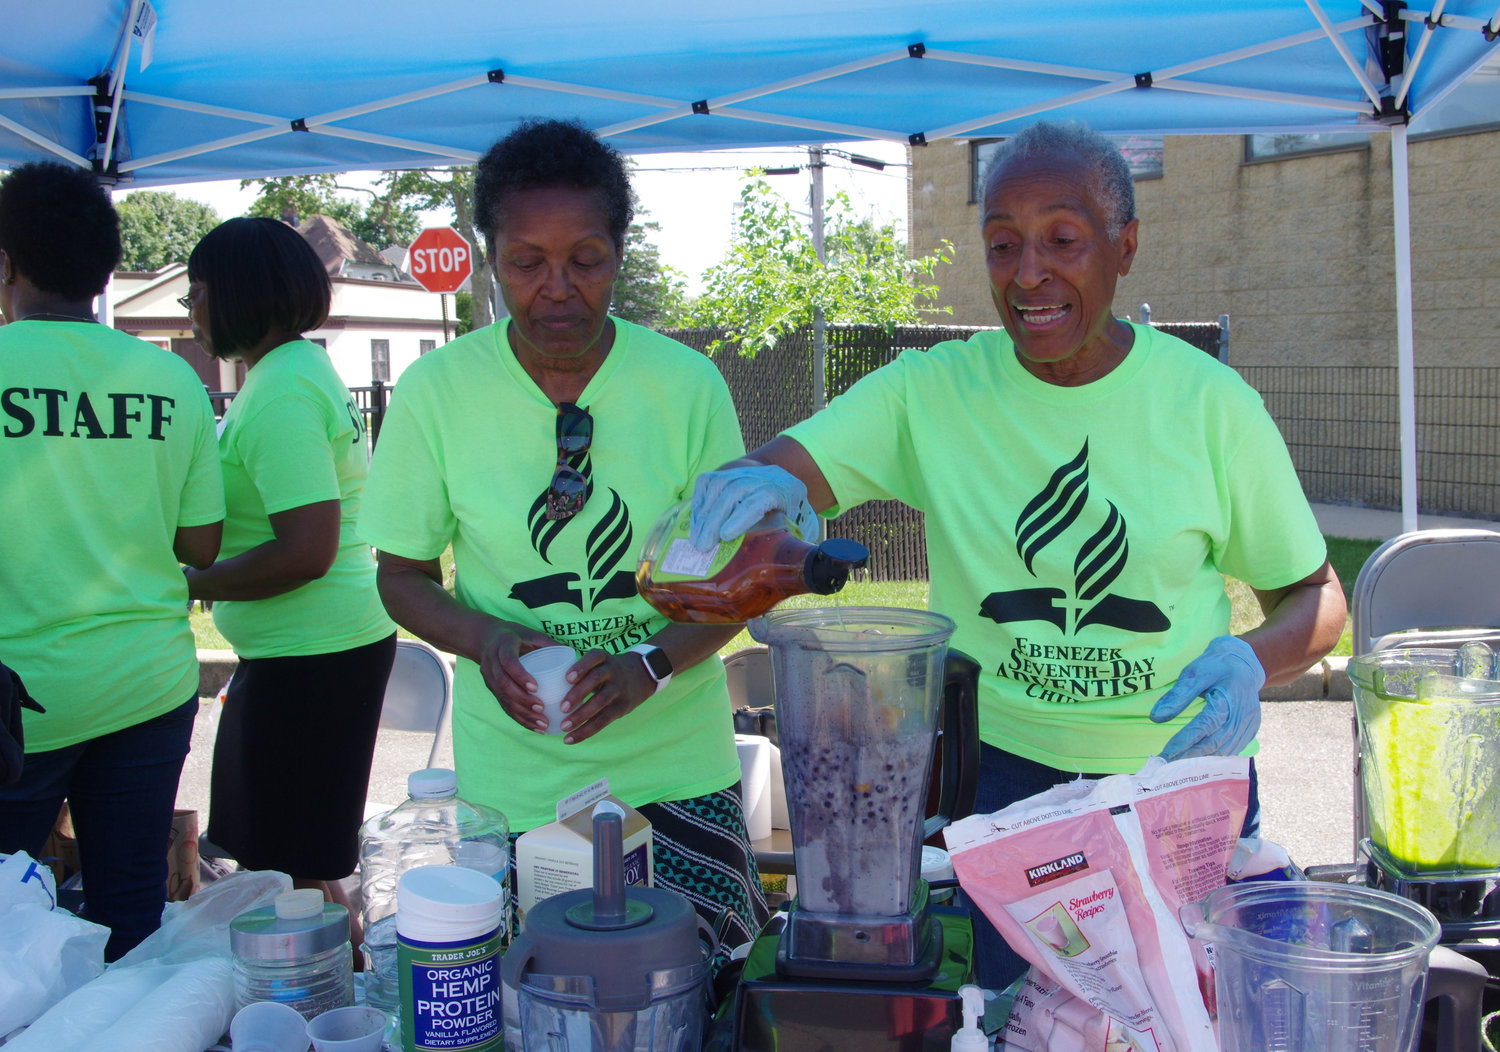 Retired nurse Ruth Burke, right, and health fair volunteer Ina Richards, worked together to make smoothies.